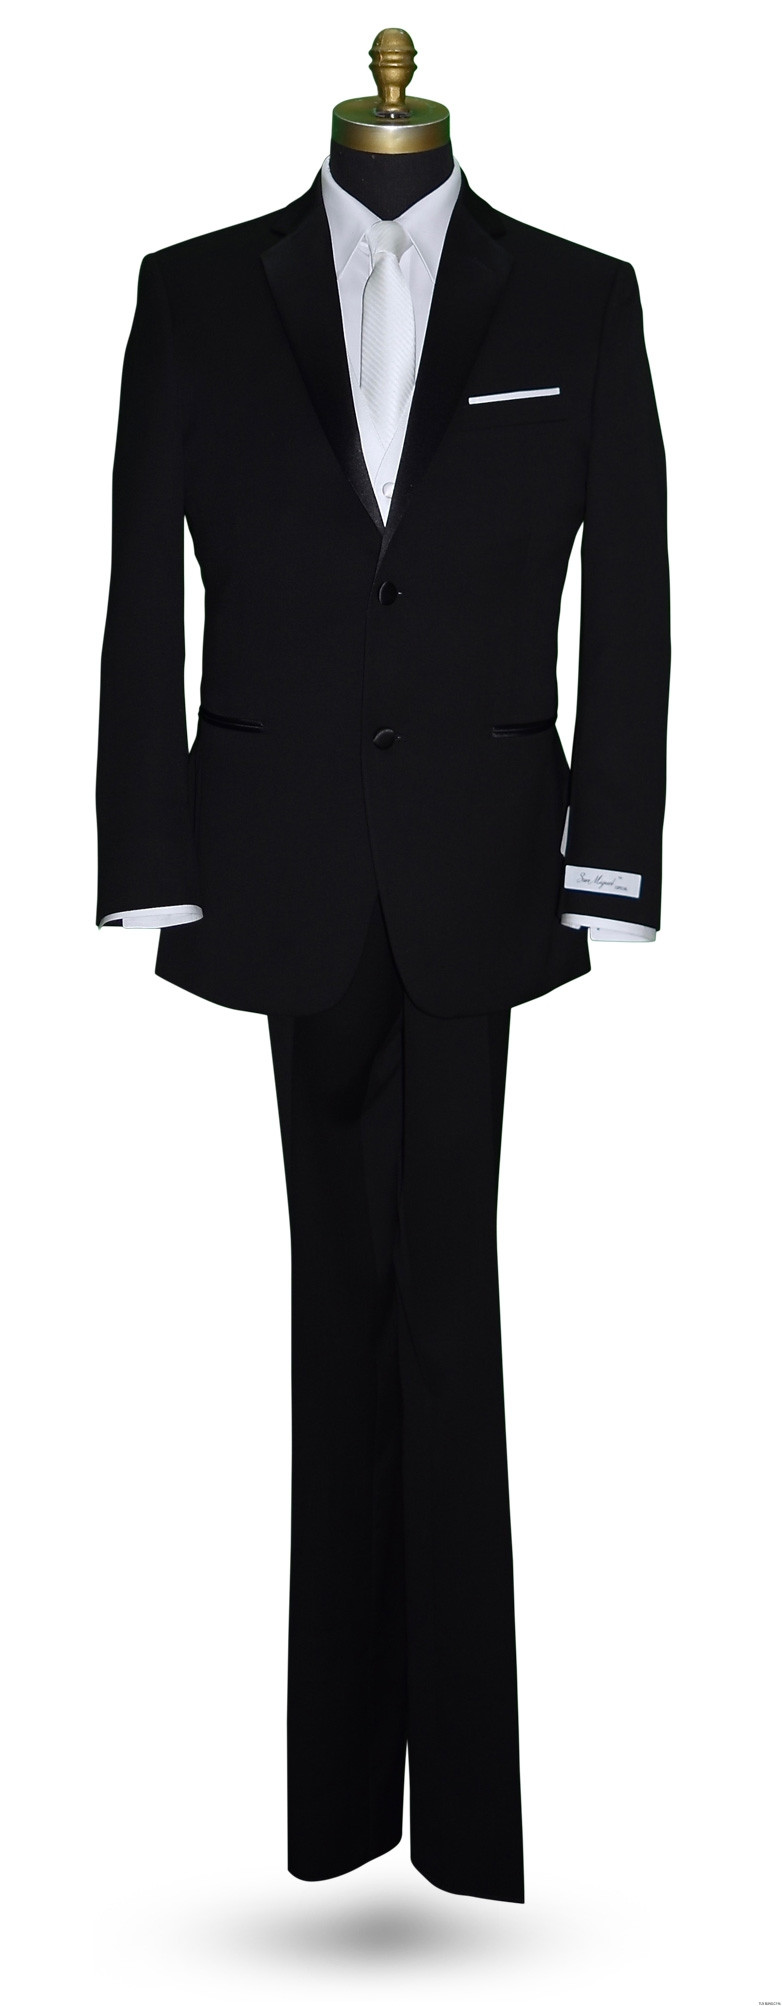 men's long white tie with stripes with black tuxedo by San Miguel Formals